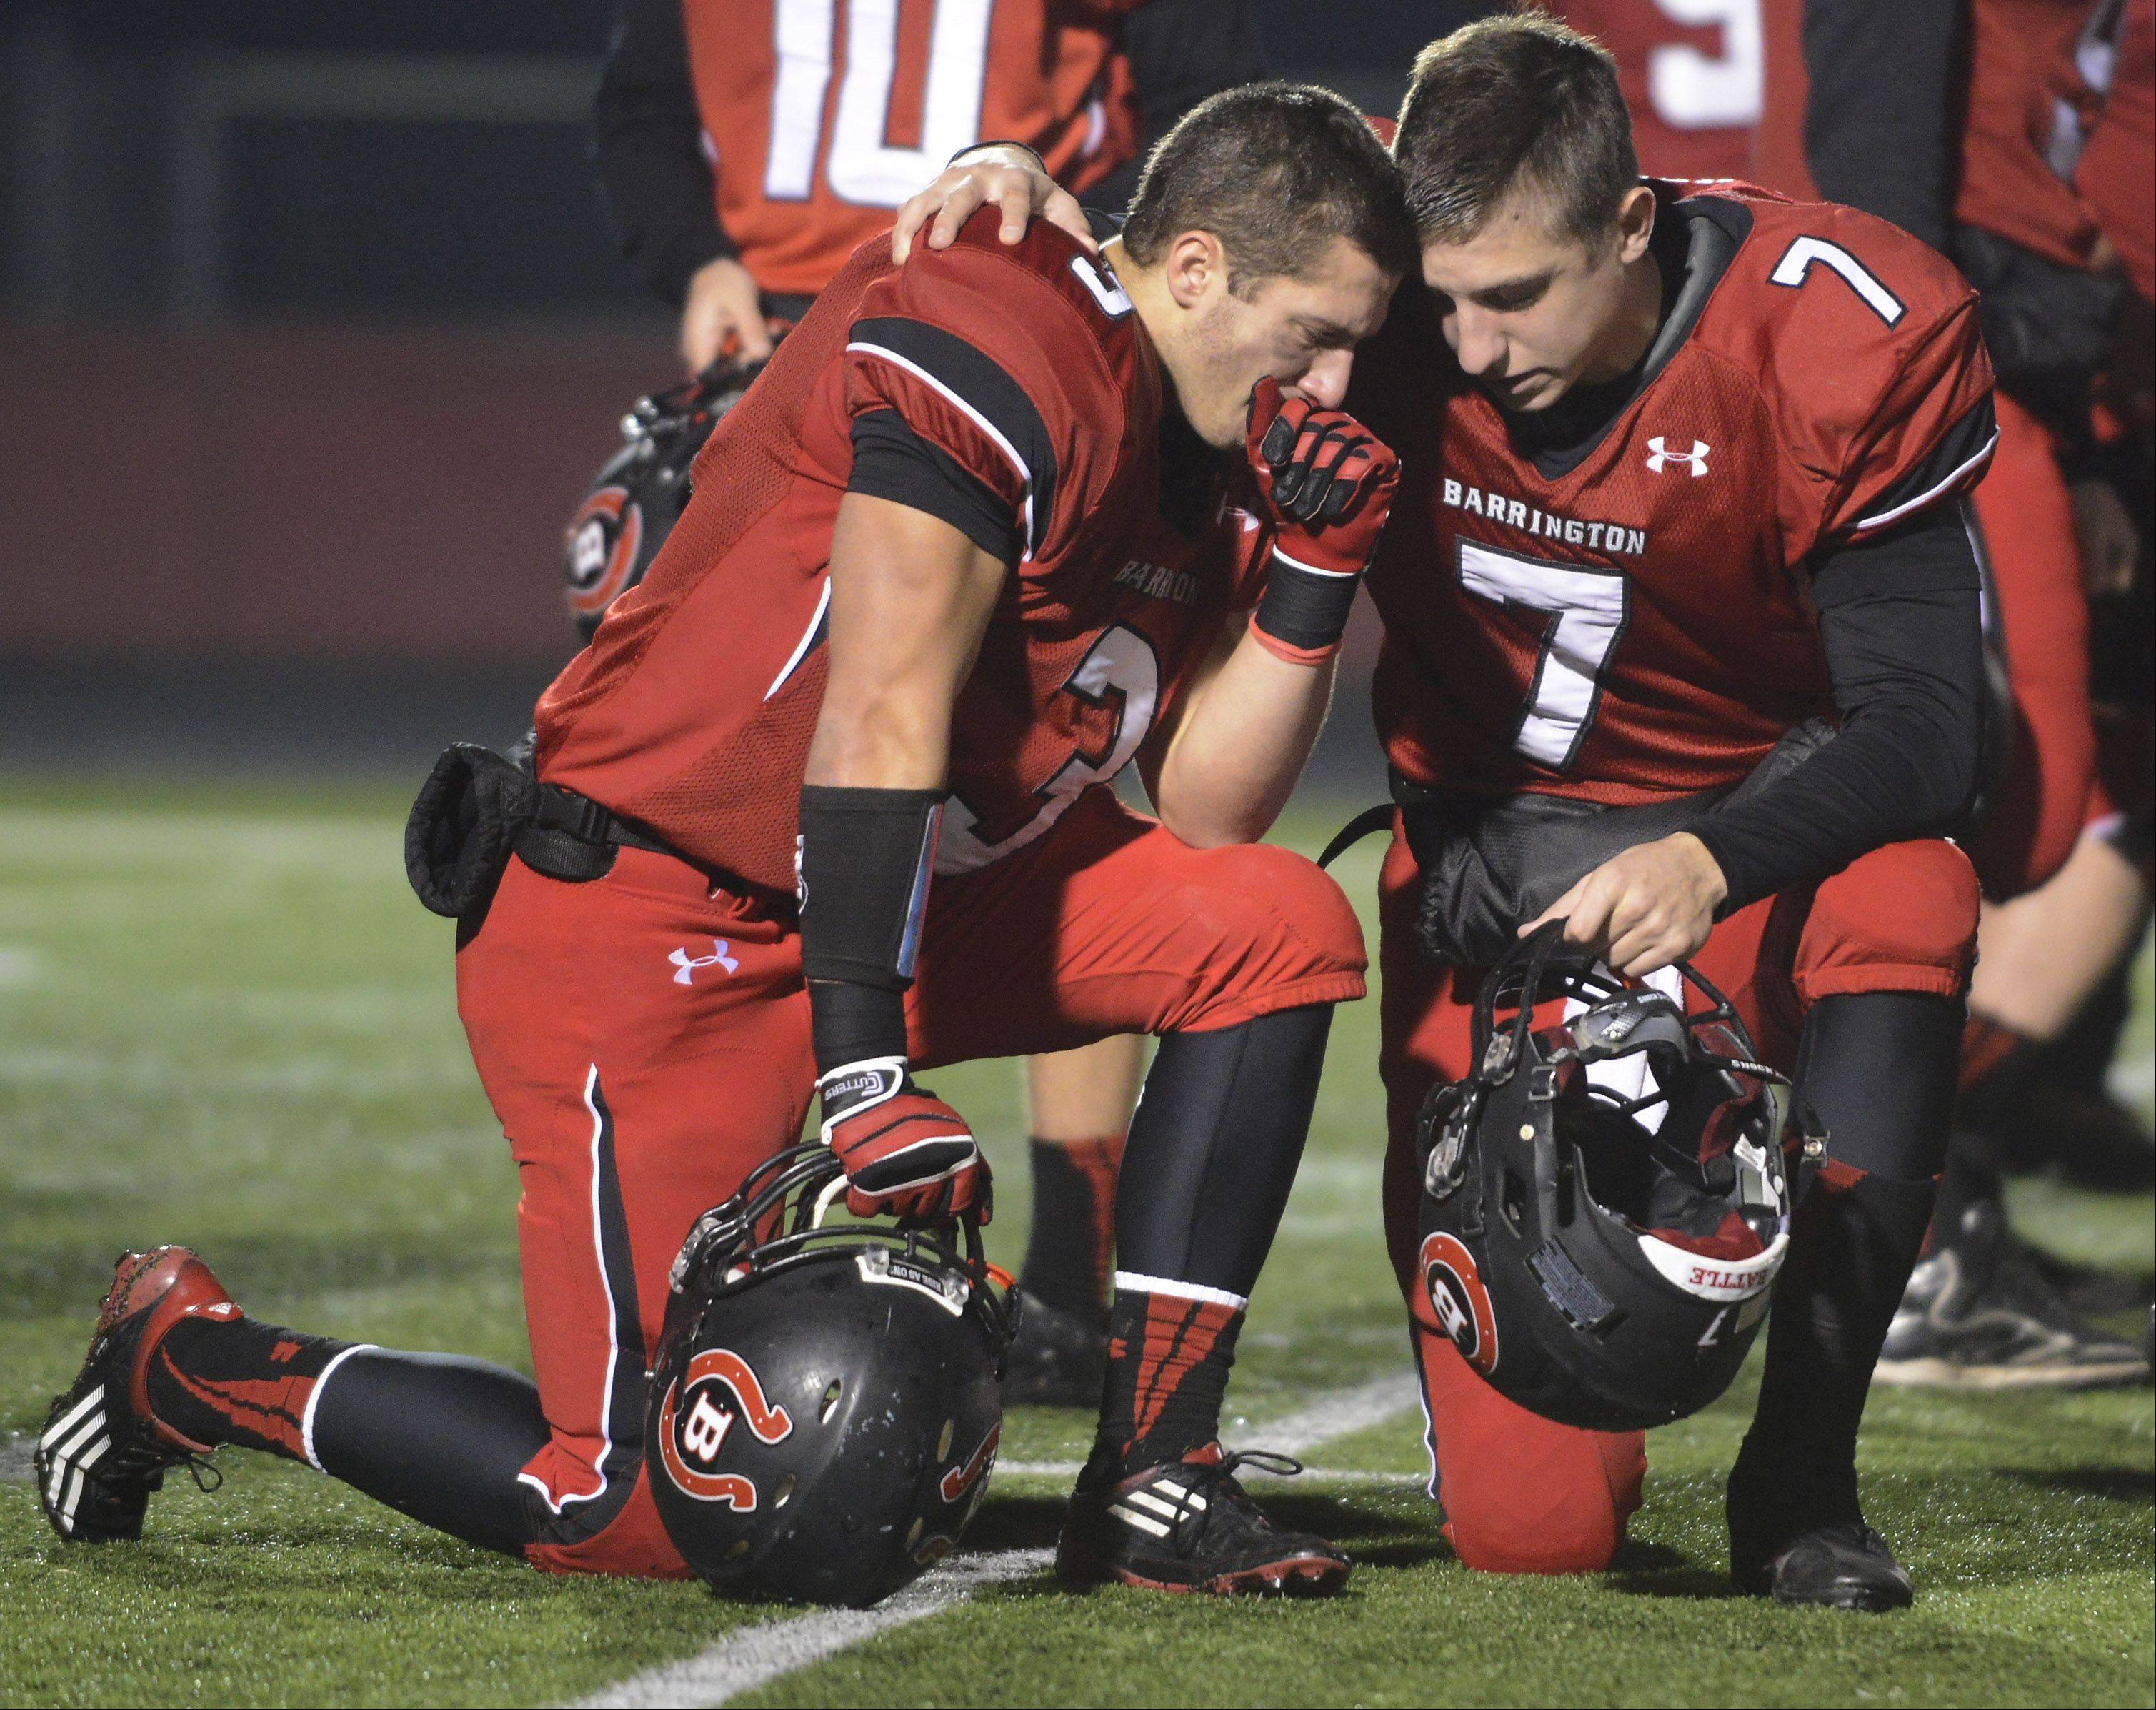 Barrington quarterback Daniel Kubiuk tries to console teammate Tommy Lessing following the Broncos' 14-0 loss to Stevenson during Saturday's Class 8A playoff game.